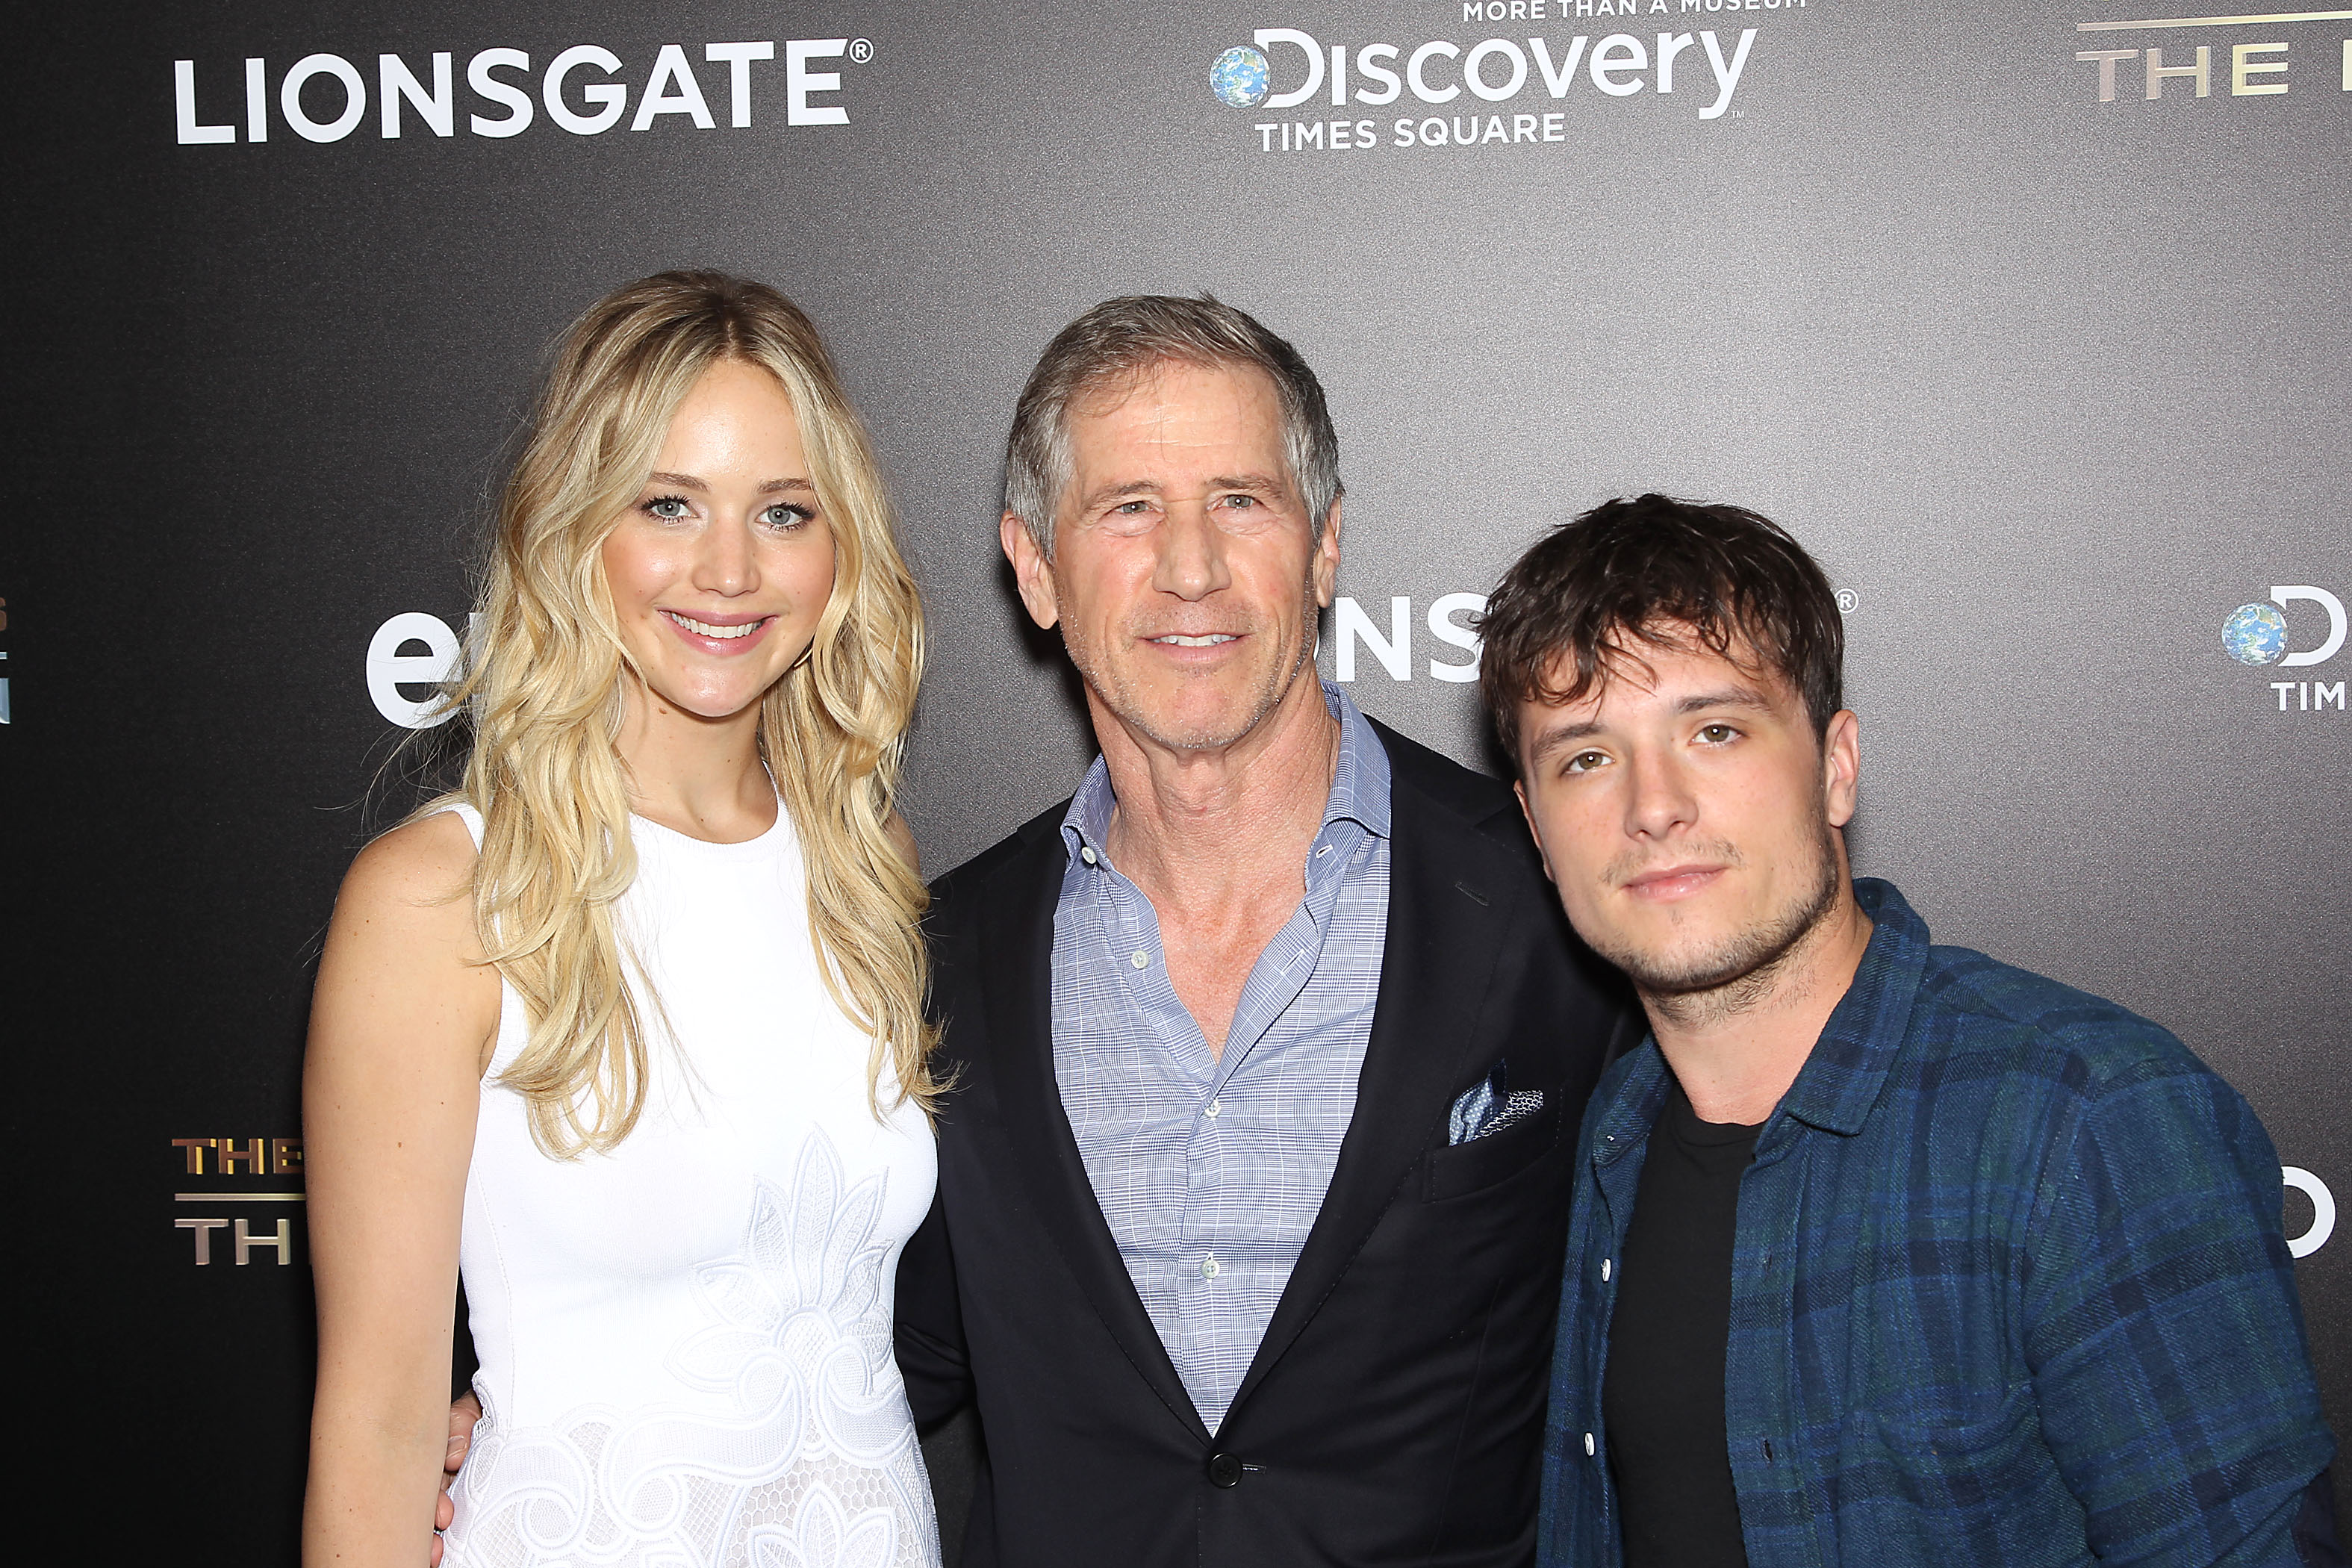 - New York, NY - 6/28/15 - Jennifer Lawrence, Jon Feltheimer (CEO; Lionsgate) and Josh Hutcherson attends the VIP Event Celebrating THE HUNGER GAMES: THE EXHIBITION at The Discovery Times Square Opening on July 1st.   -PICTURED: Jennifer Lawrence, Jon Feltheimer (CEO; Lionsgate) and Josh Hutcherson -PHOTO by: Marion Curtis/Startraksphoto.com -FILENAME: MC_15_28830748.JPG -LOCATION: Discovery Times Square  Startraks Photo New York,  NY For licensing please call 212-414-9464  or email sales@startraksphoto.com Image may not be published in any way that is or might be deemed defamatory, libelous, pornographic, or obscene. Please consult our sales department for any clarification or question you may have. Startraks Photo reserves the right to pursue unauthorized users of this image. If you violate our intellectual property you may be liable for actual damages, loss of income, and profits you derive from the use of this image, and where appropriate, the cost of collection and/or statutory damages.